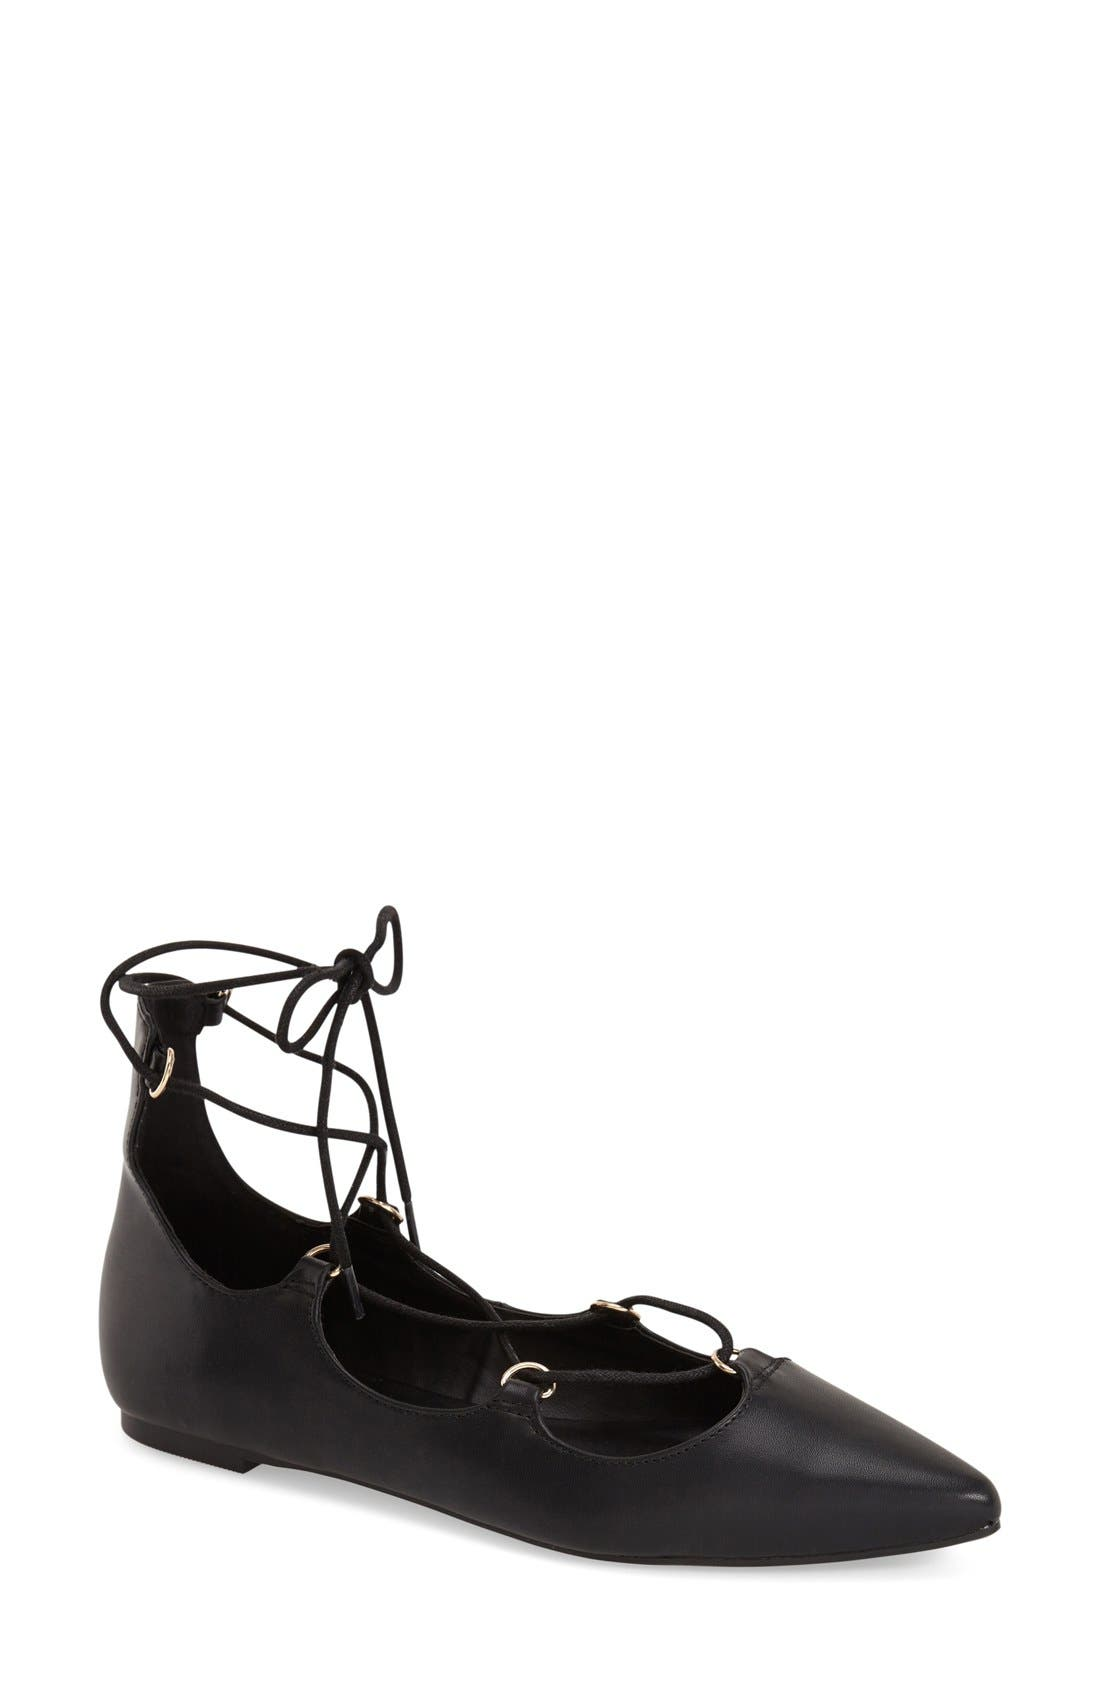 TOPSHOP 'Fancy' Pointy Toe Ghillie Flat, Main, color, 001